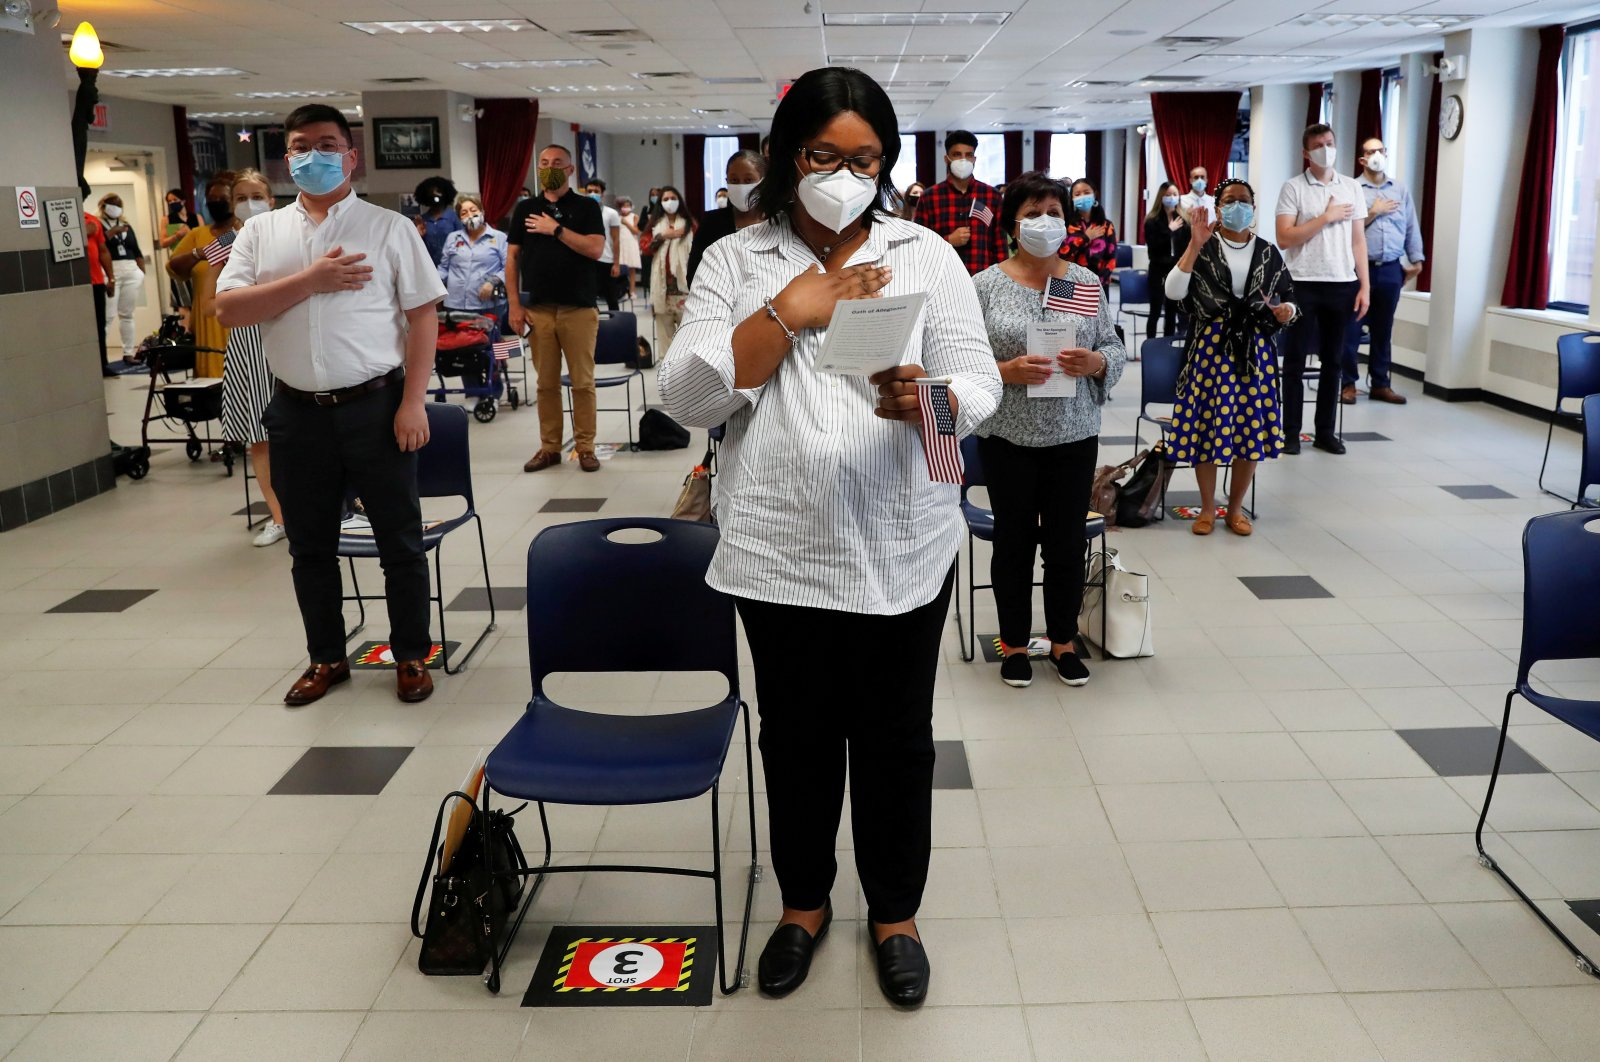 Ifeoma Eh, a citizen candidate from Nigeria, stands with others socially distanced and wearing protective face masks, as the outbreak of the coronavirus disease (COVID-19) continues, during a U.S. Citizenship and Immigration Services (USCIS) naturalization ceremony in New York, U.S., July 22, 2020. (Reuters Photo)